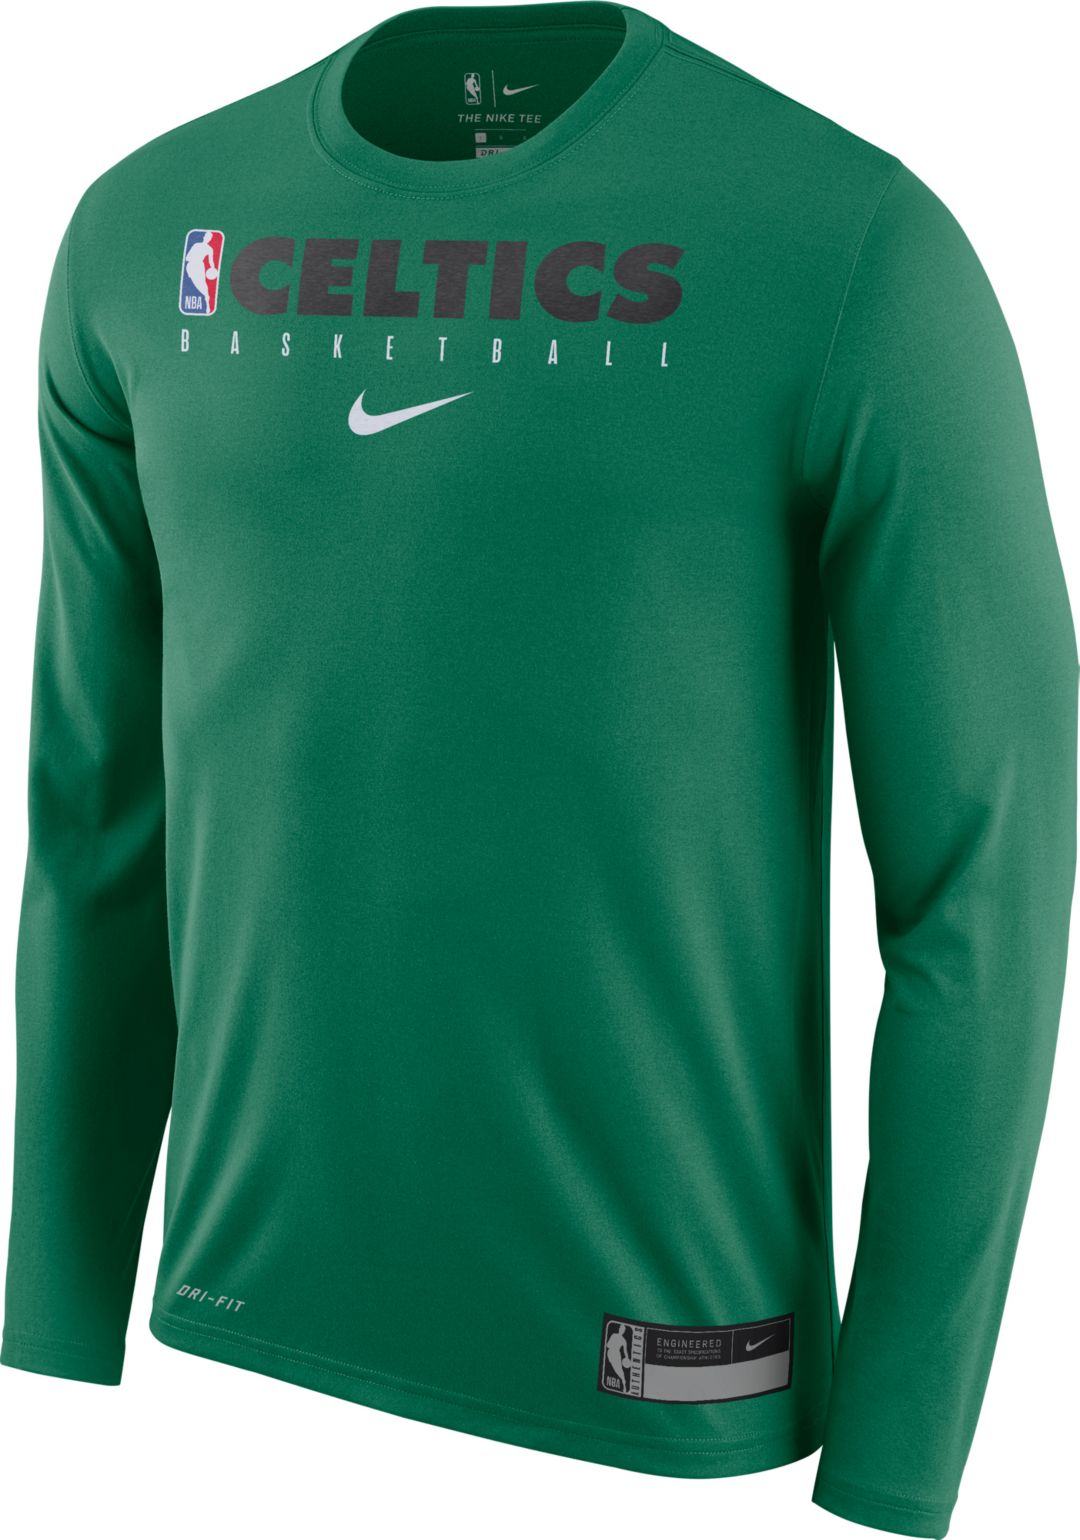 separation shoes 30069 cc041 Nike Men's Boston Celtics Dri-FIT Practice Long Sleeve Shirt